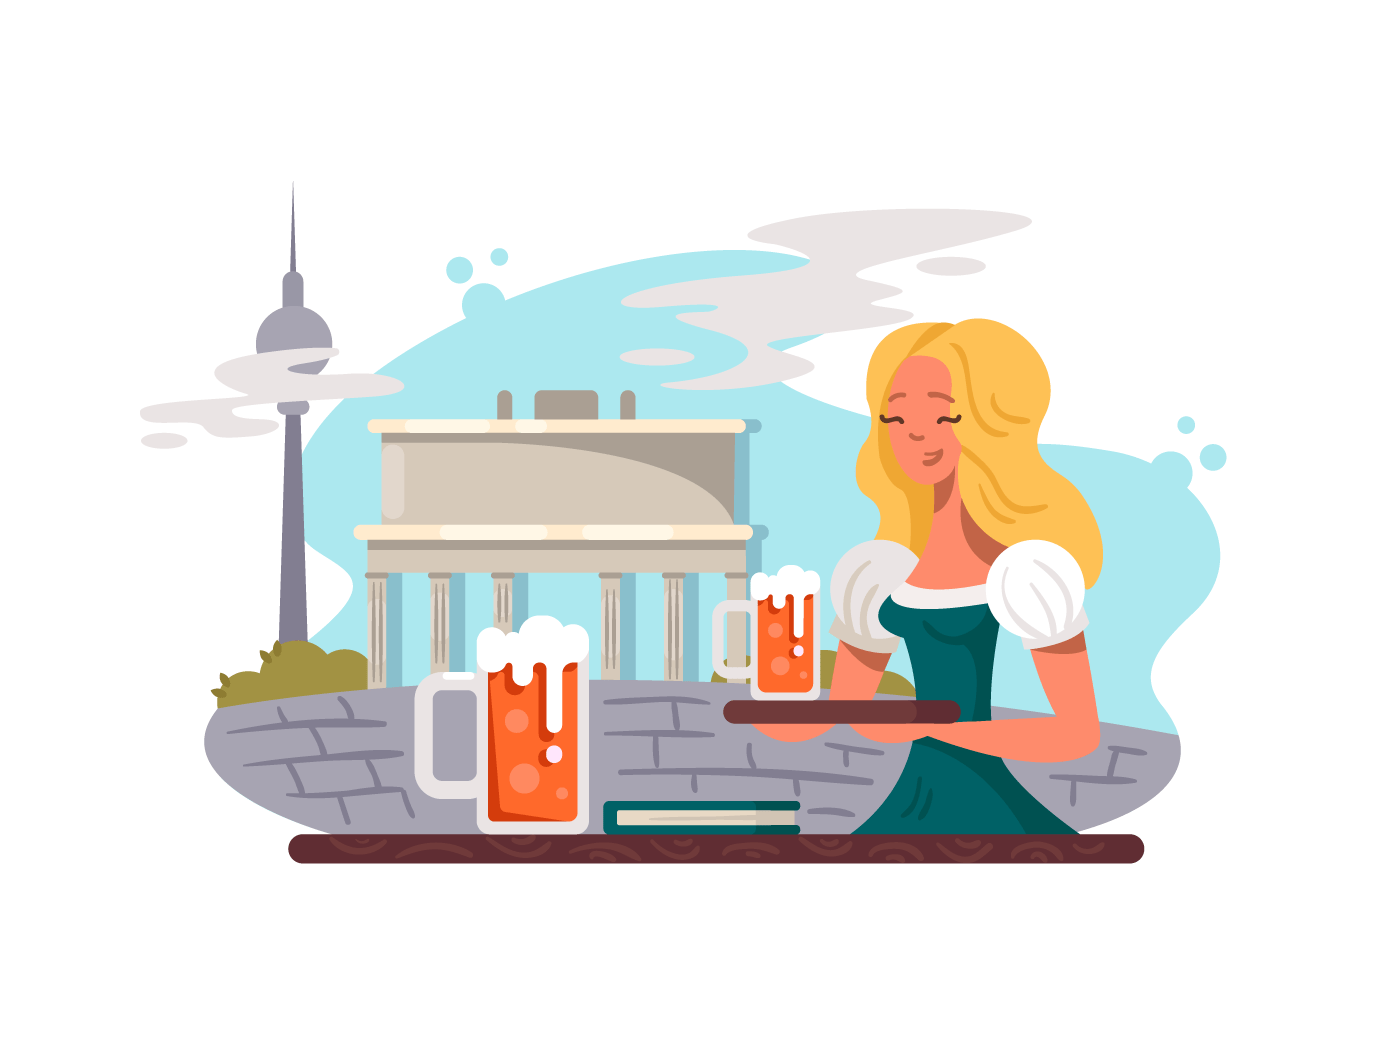 Berlin capital of Germany illustration